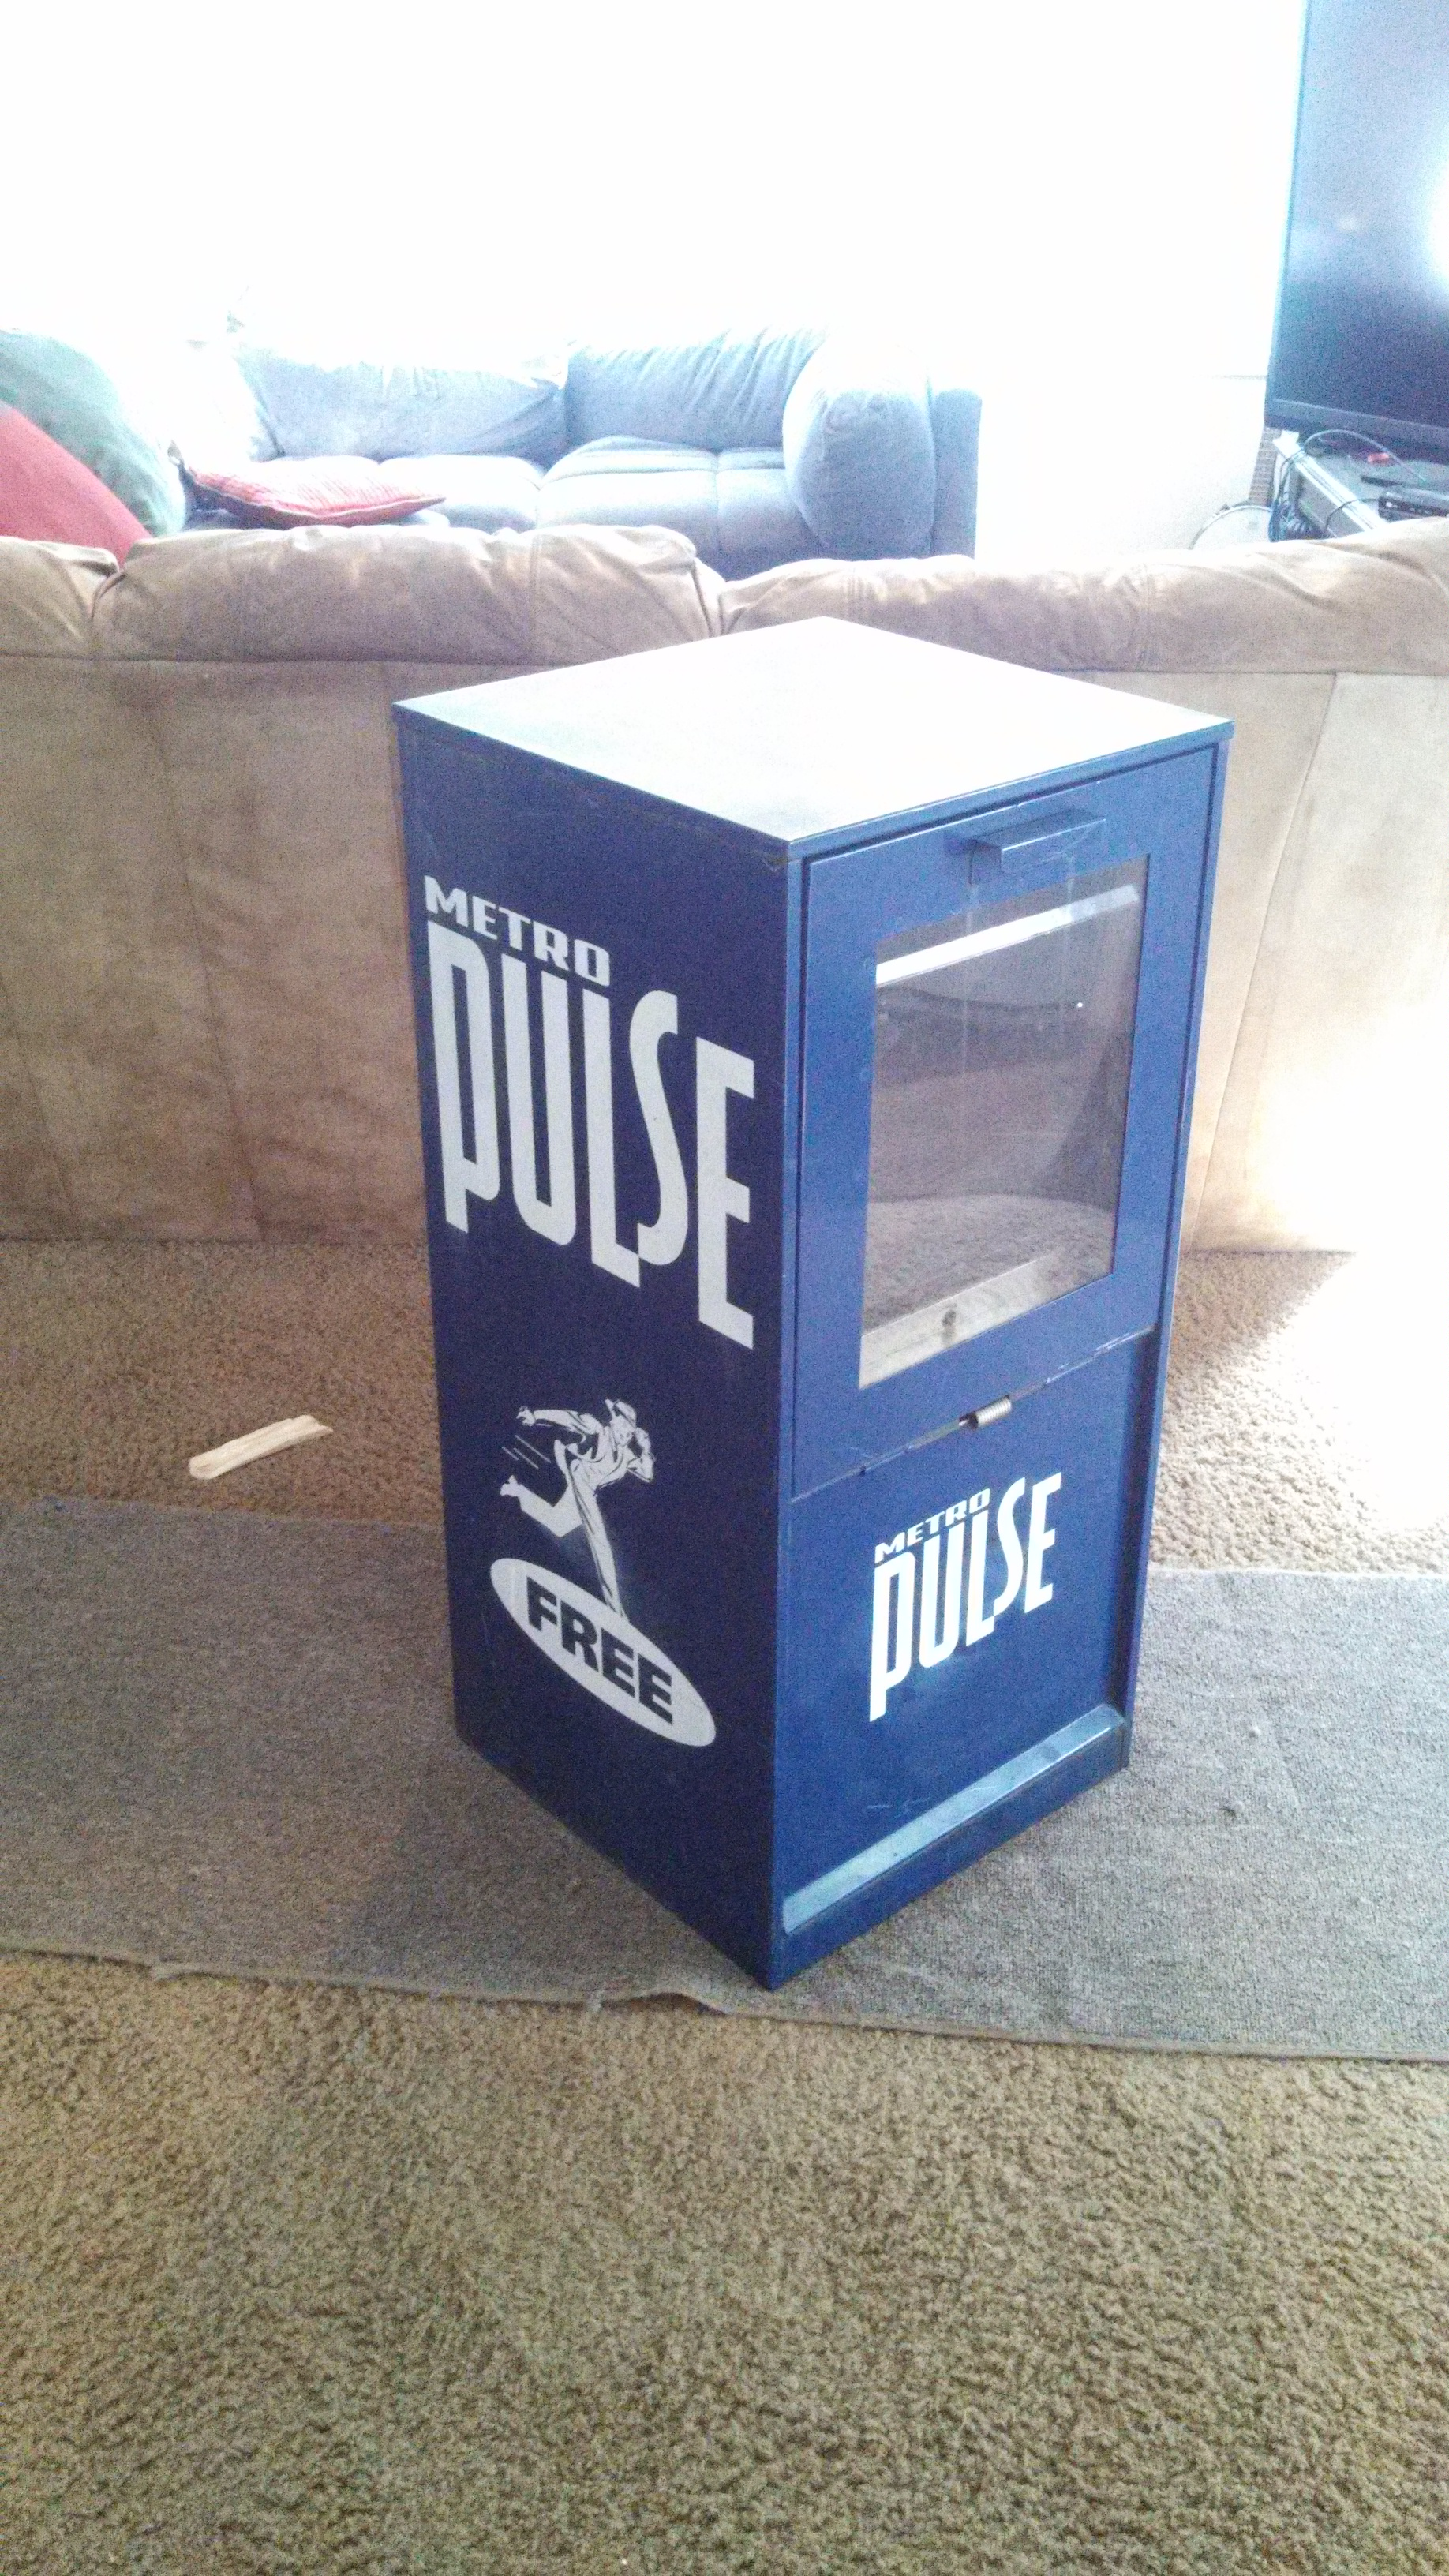 Metropulse Paper Box Design